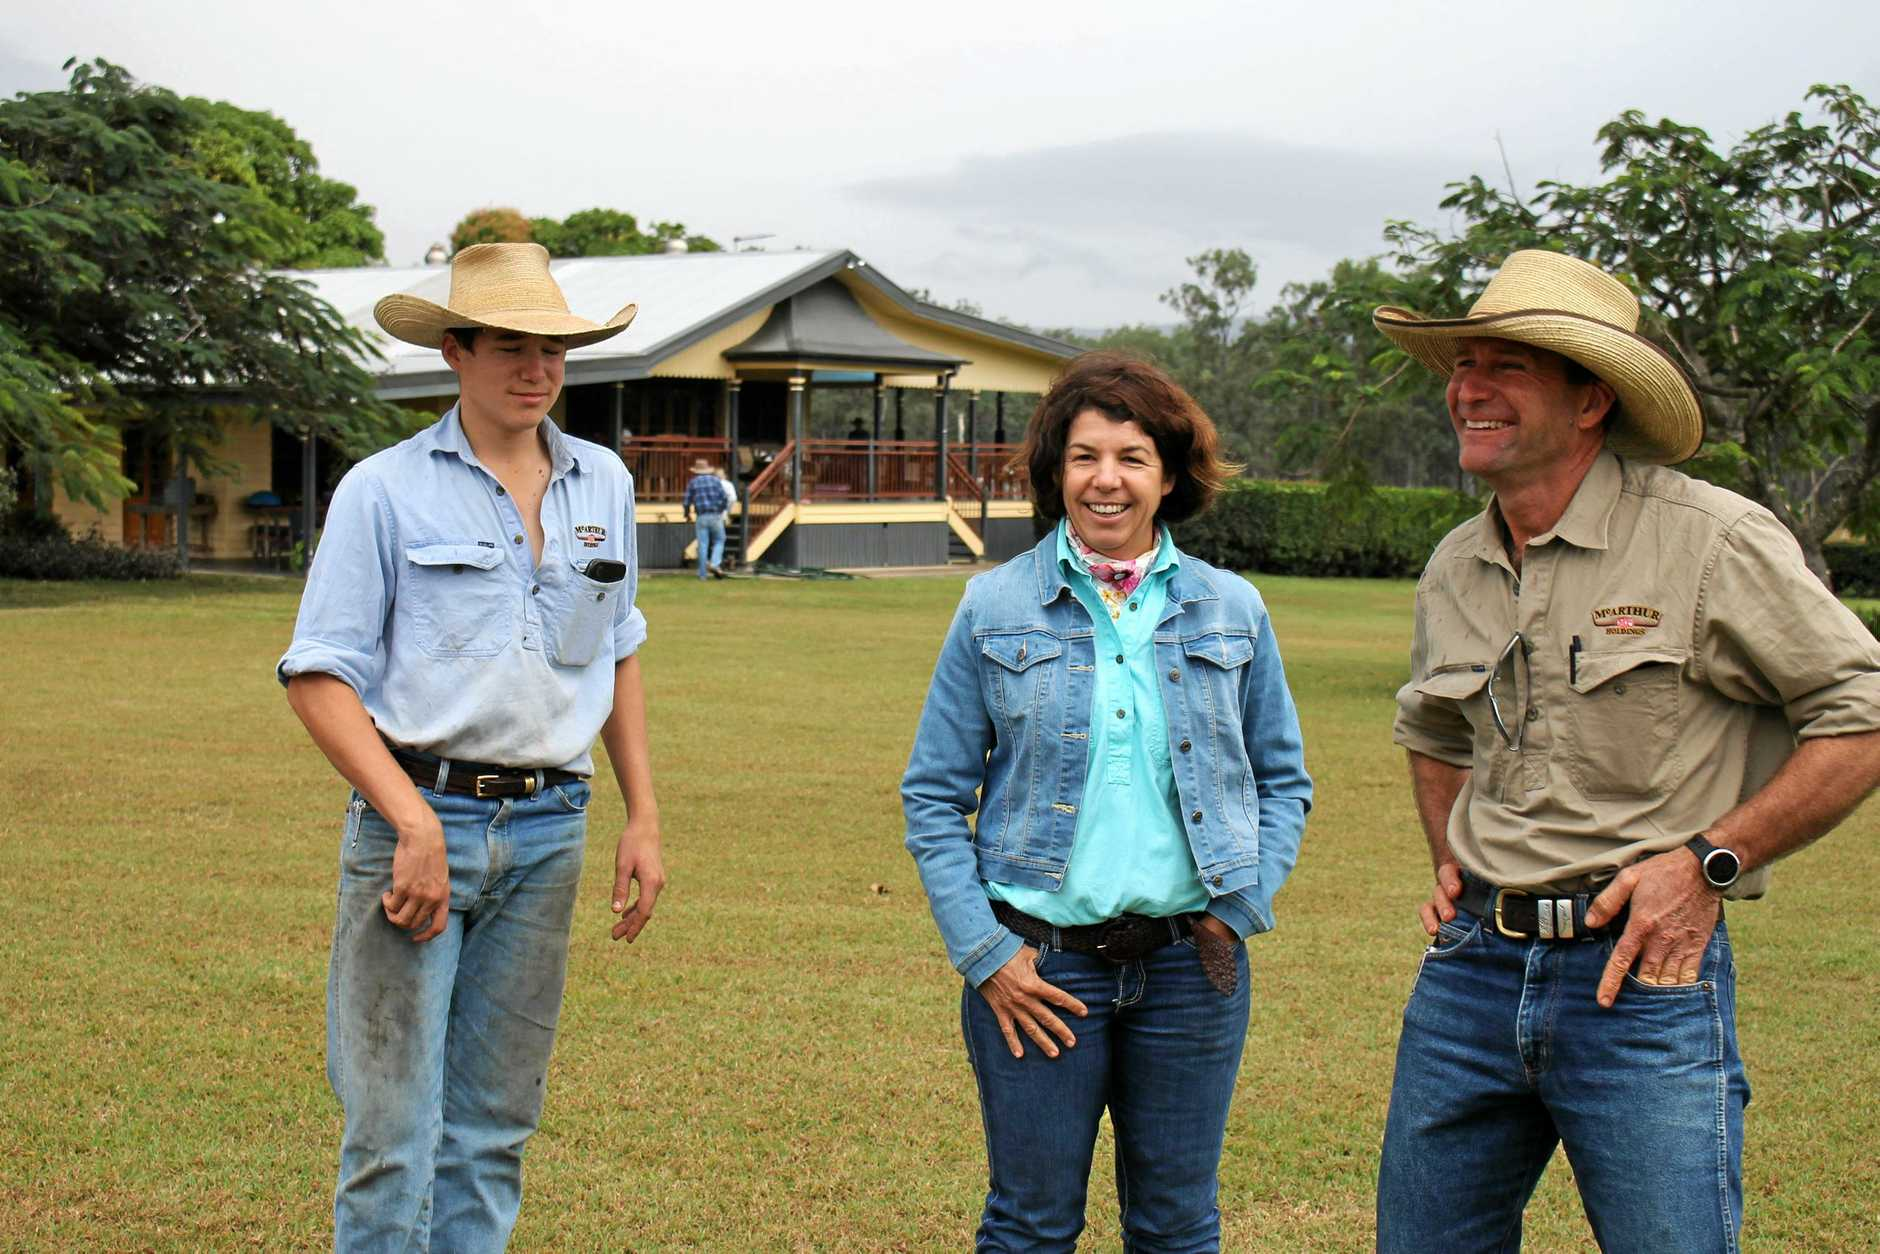 WETLAND WEEKEND: From left Andrew, Ainsley and Rob McArthur, owners of St Lawrence cattle and pig operation Mystery Park, greet travellers on the Reef Catchments and GWFN Farm to Plate Lunch bus tour.